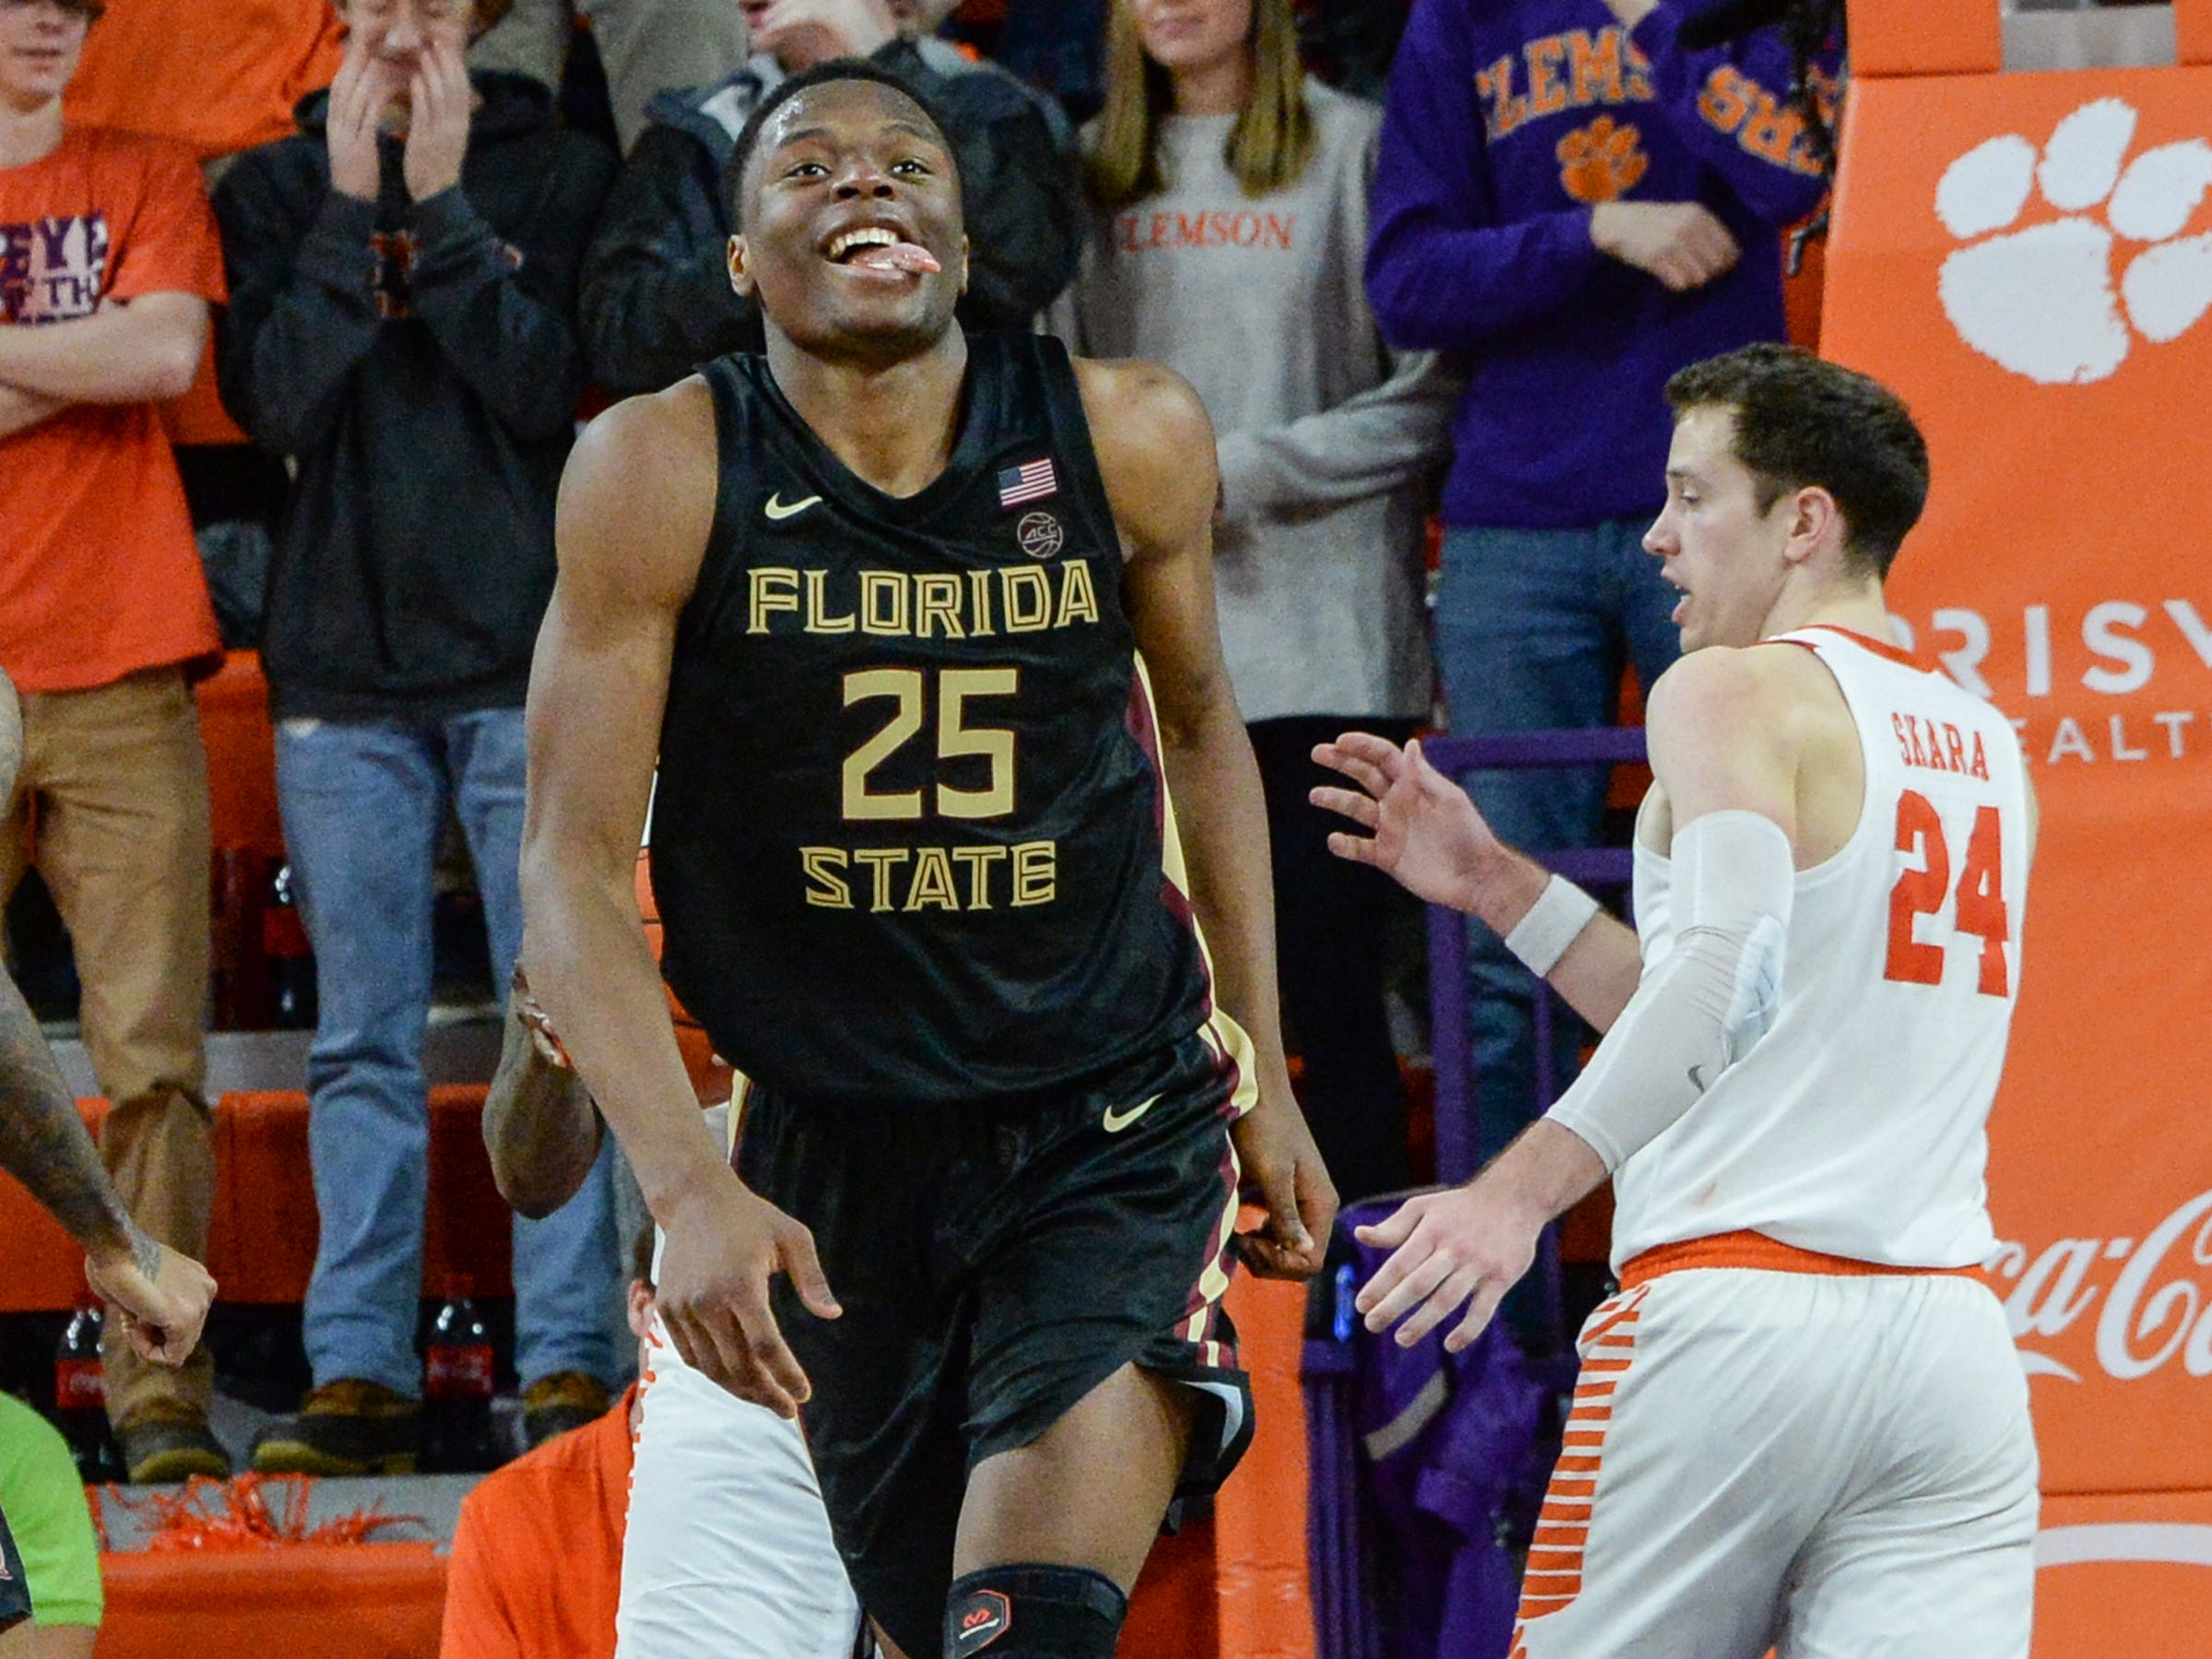 Florida State forward Mfiondu Kabengele(25) reacts after scoring near Clemson forward David Skara (24) during the second half at Littlejohn Coliseum in Clemson Tuesday, February 19, 2019.